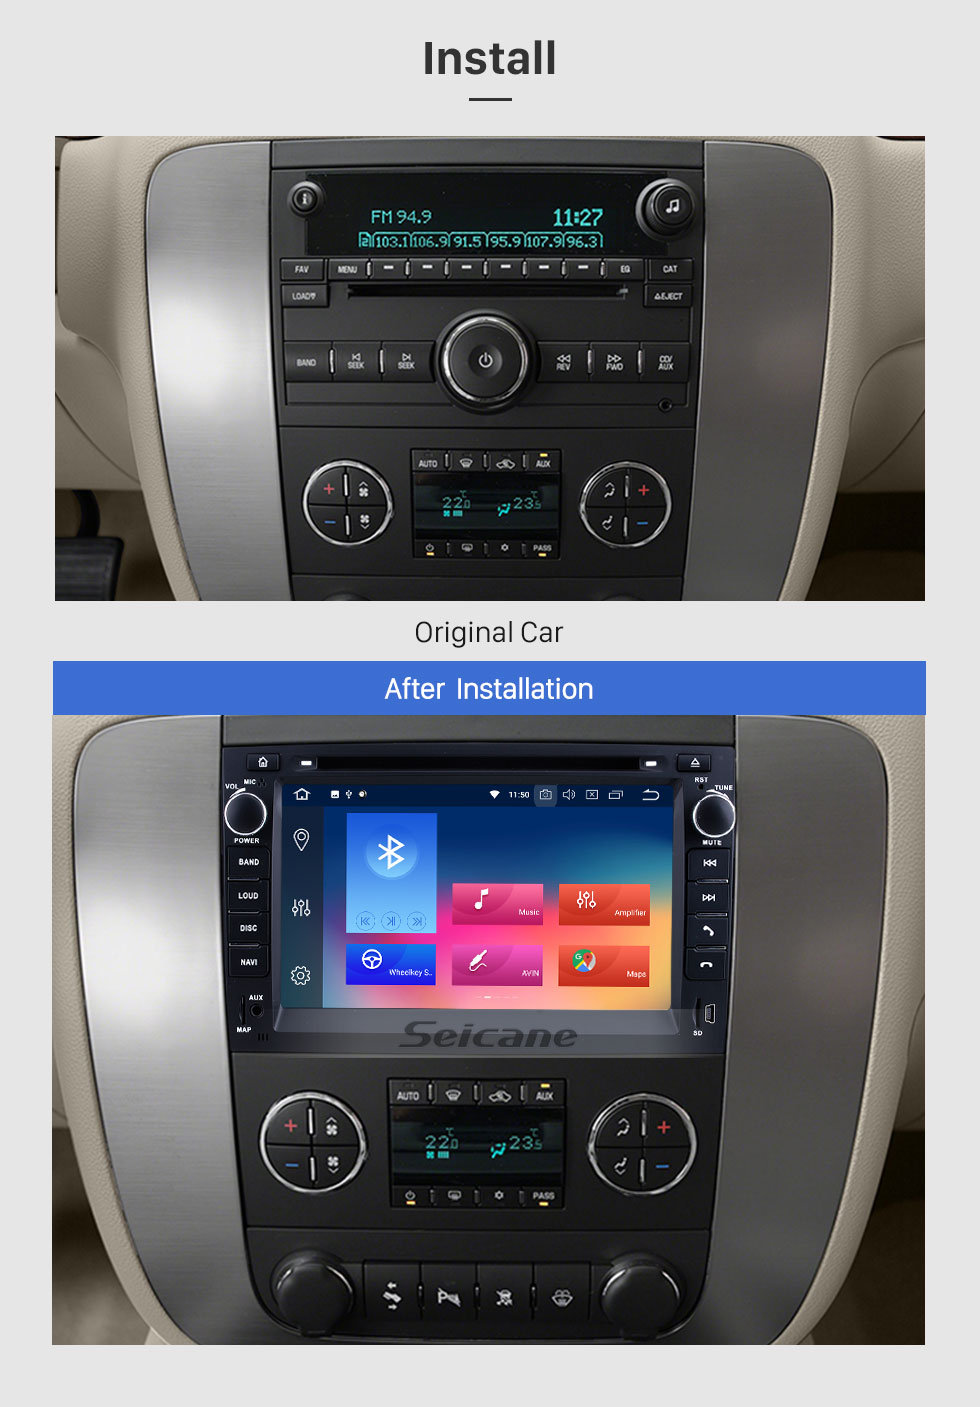 Seicane OEM 2007-2013 GMC Yukon Tahoe Acadia Chevy Chevrolet Tahoe Suburban Buick Enclave Android 9.0 Radio Removal with Autoradio GPS Navigation Car A/V System 1024*600 Multi-touch Capacitive Screen Mirror Link OBD2 3G WiFi